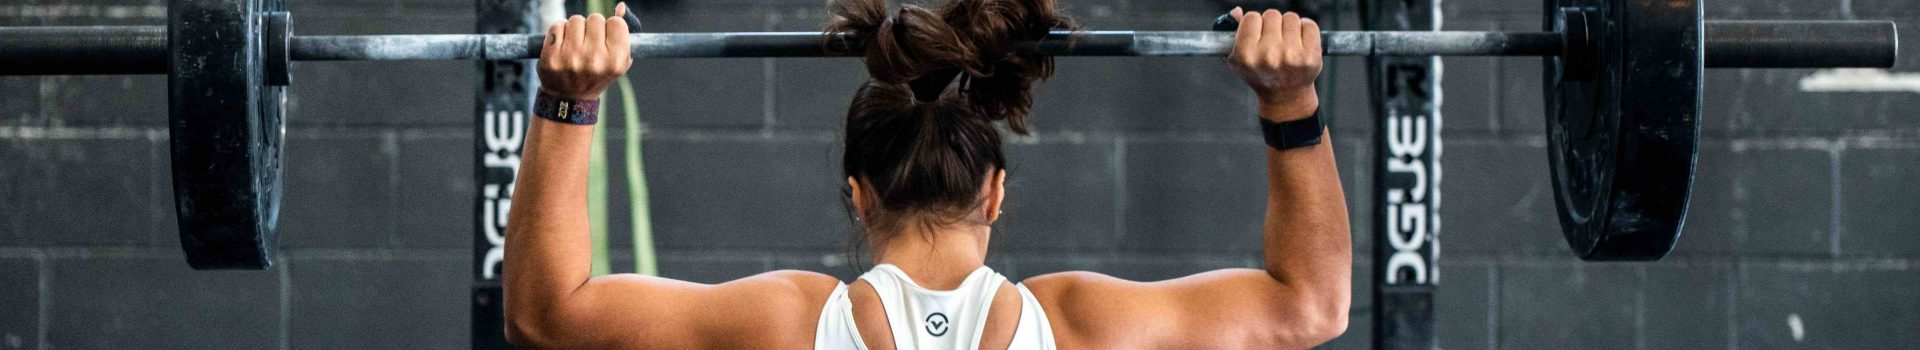 What are the Best Ways to Tone Up?